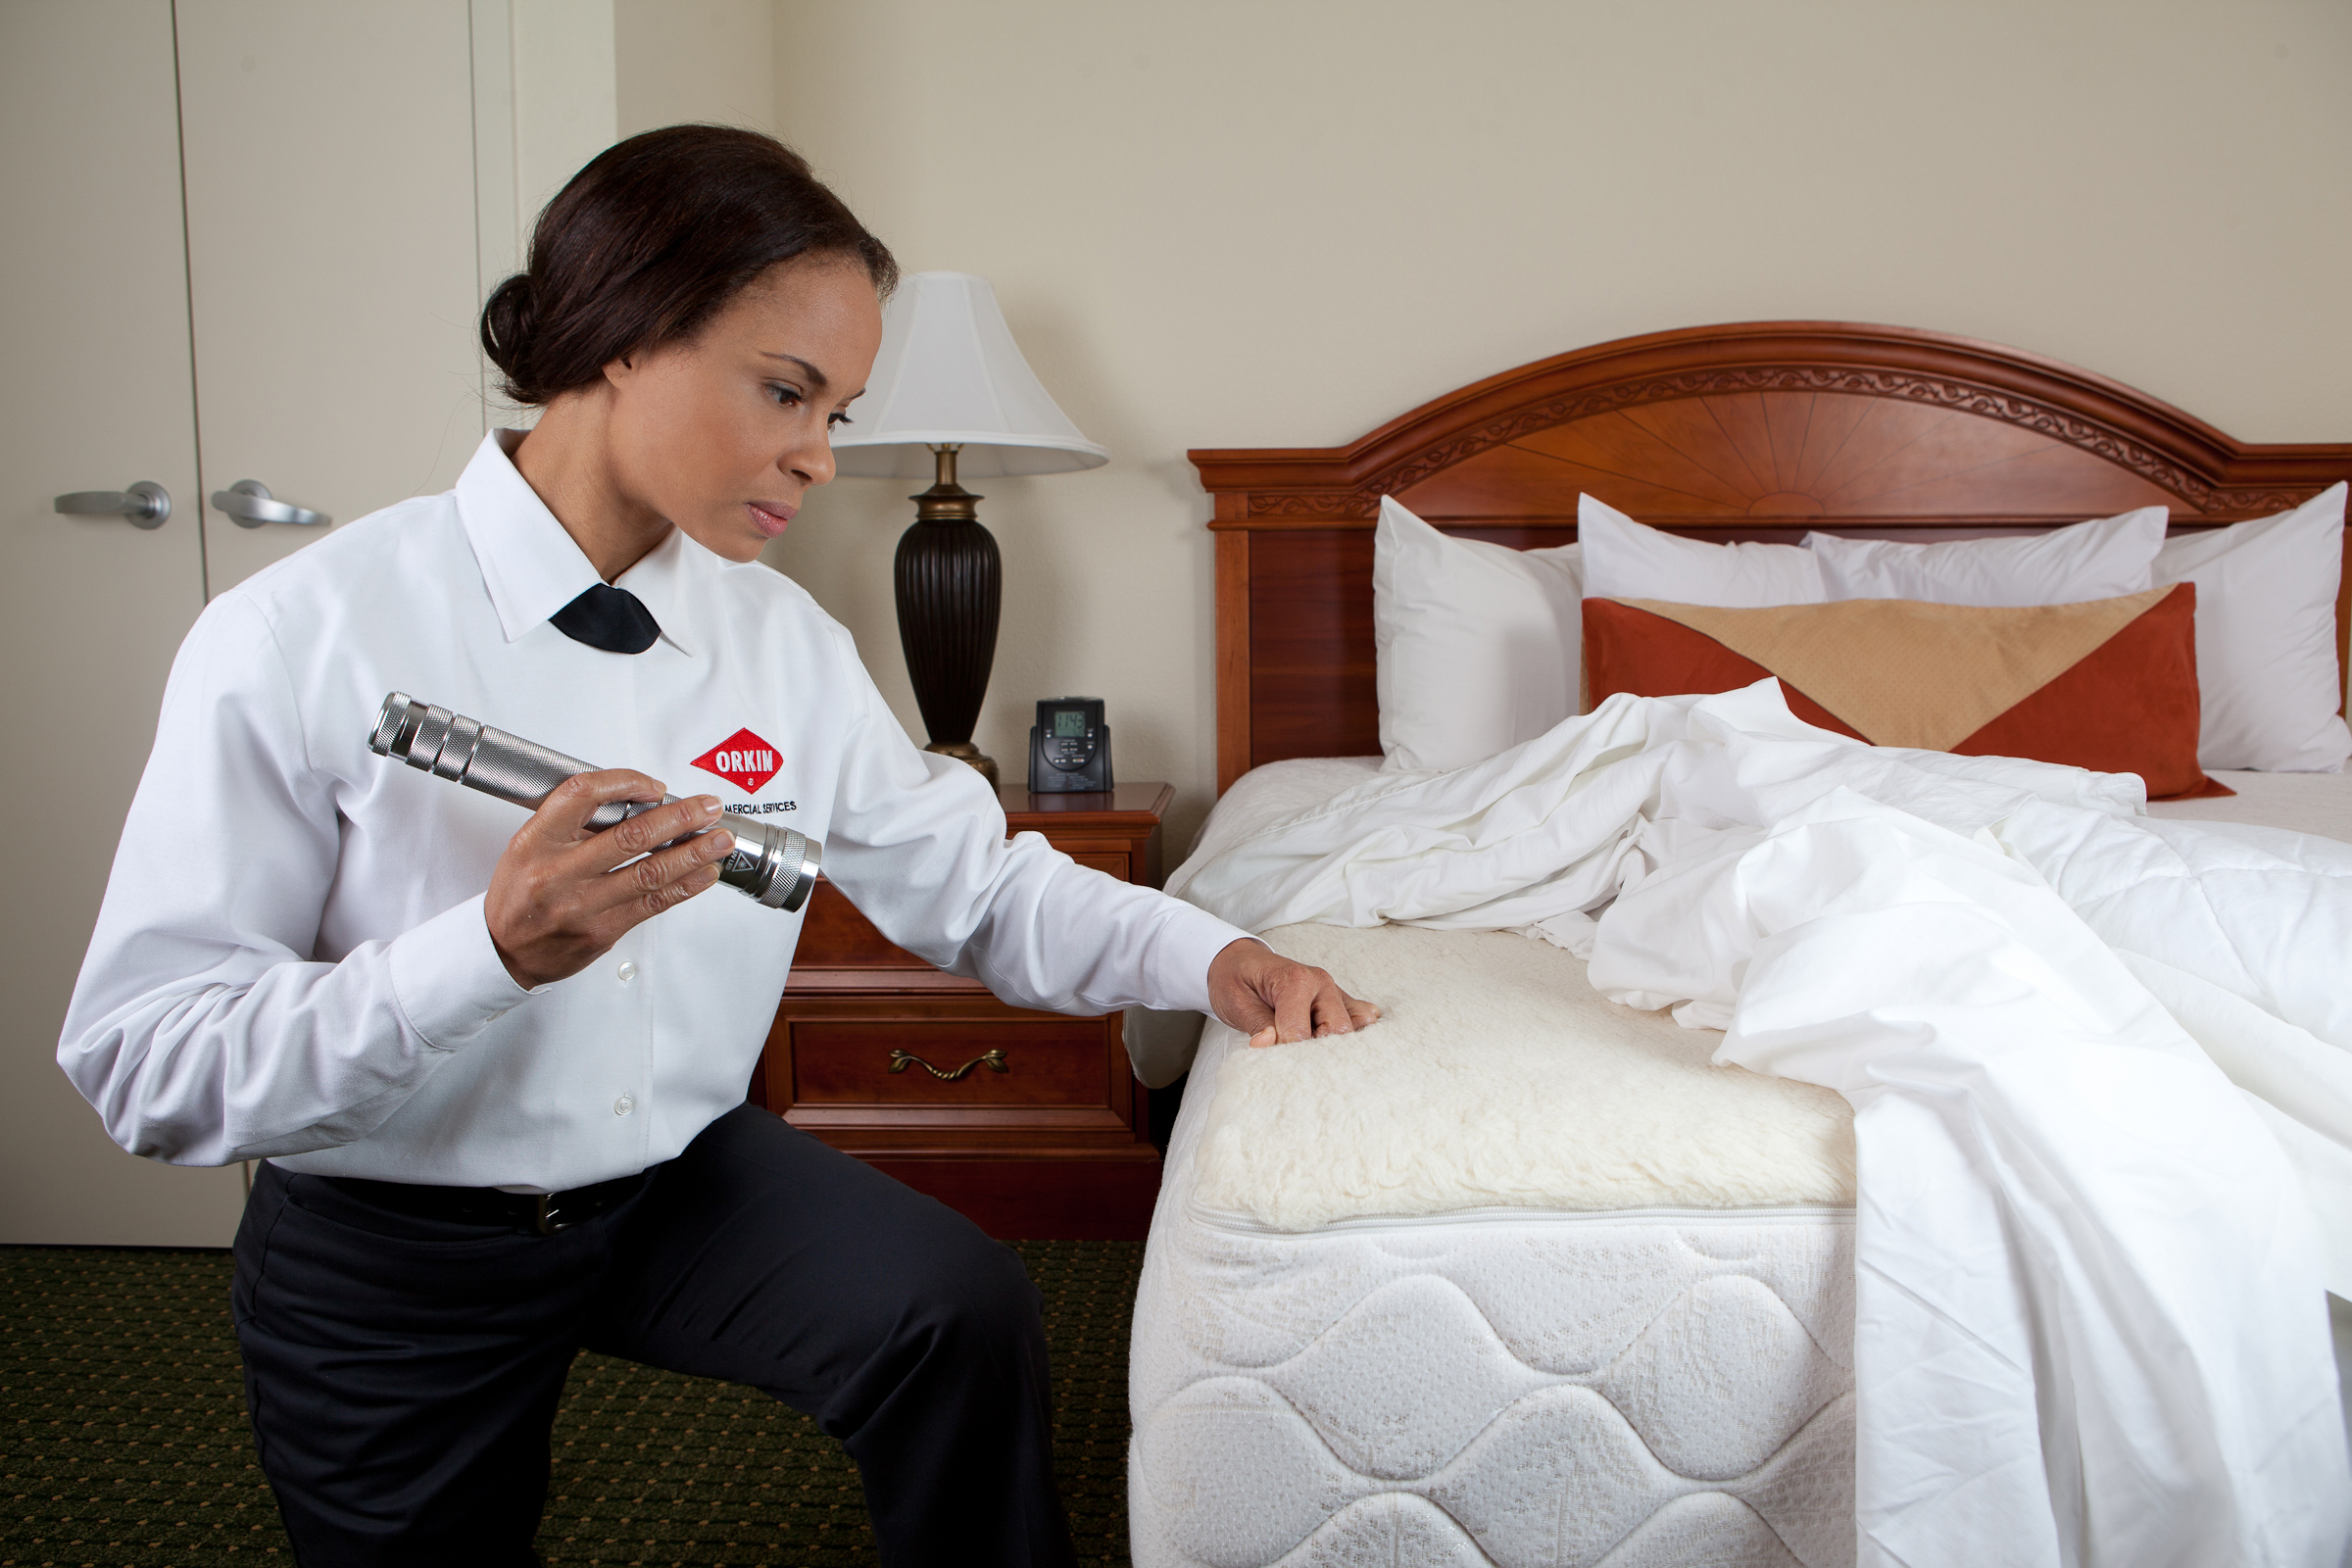 Hospitality Pest Control - Commercial Services for Hotels